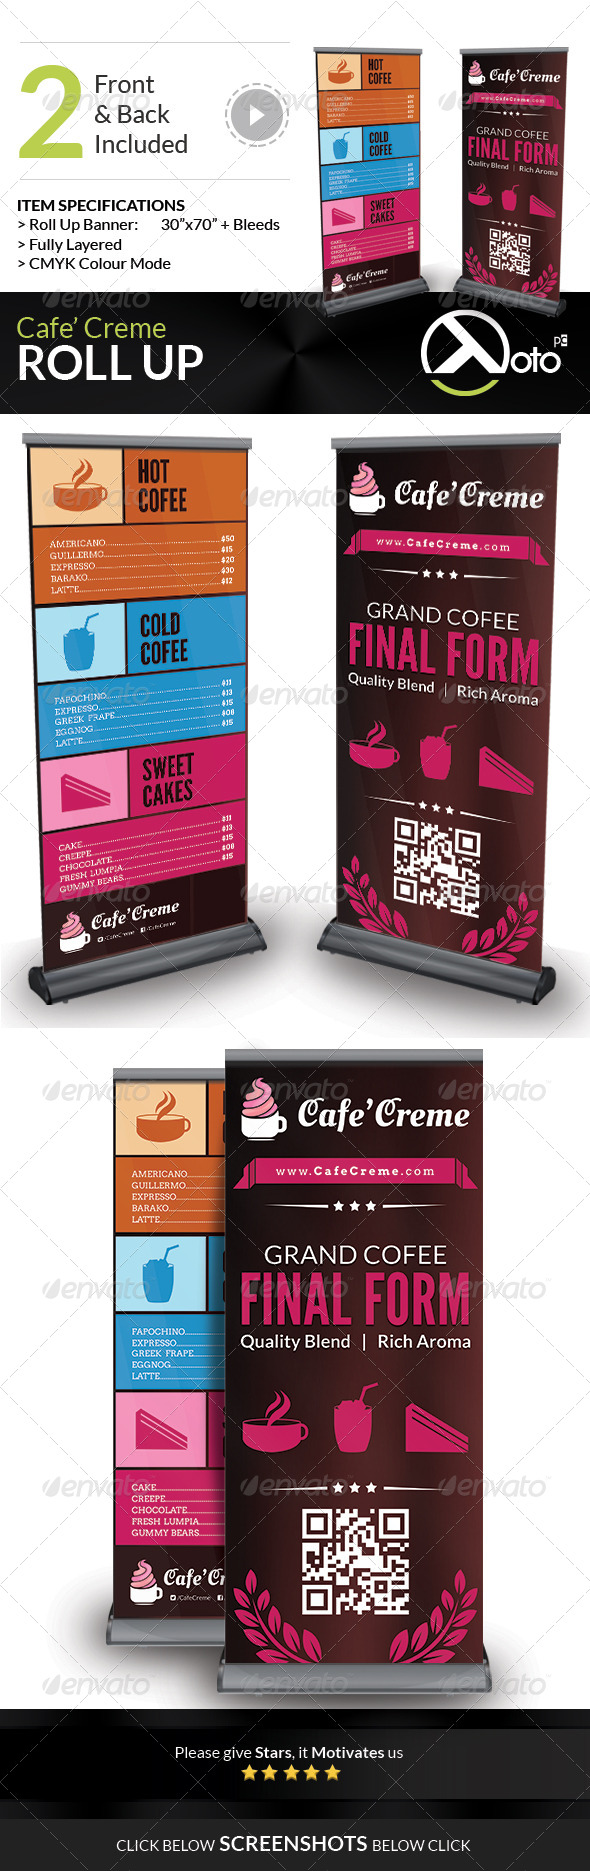 Cafe Creme Roll Up Banners - Signage Print Templates